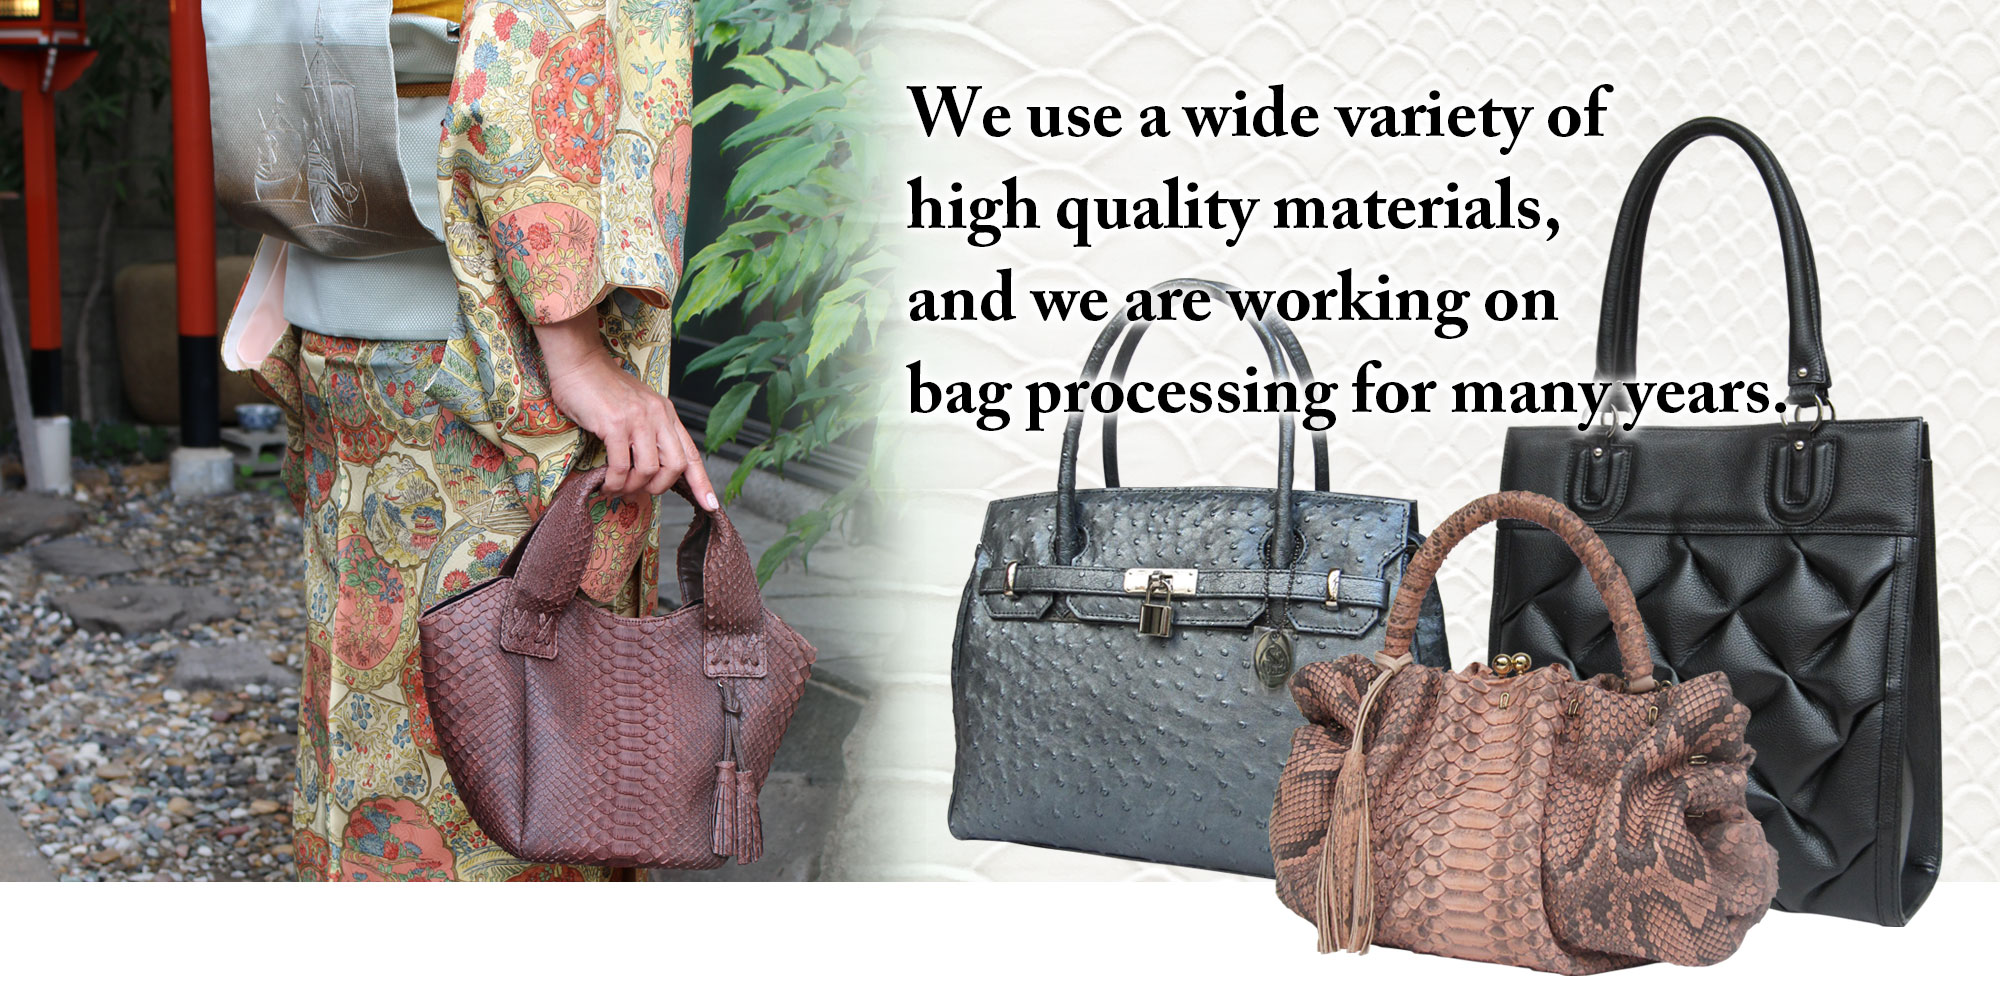 We use a wide variety of high quality materials, and we are working on bag processing for many years.